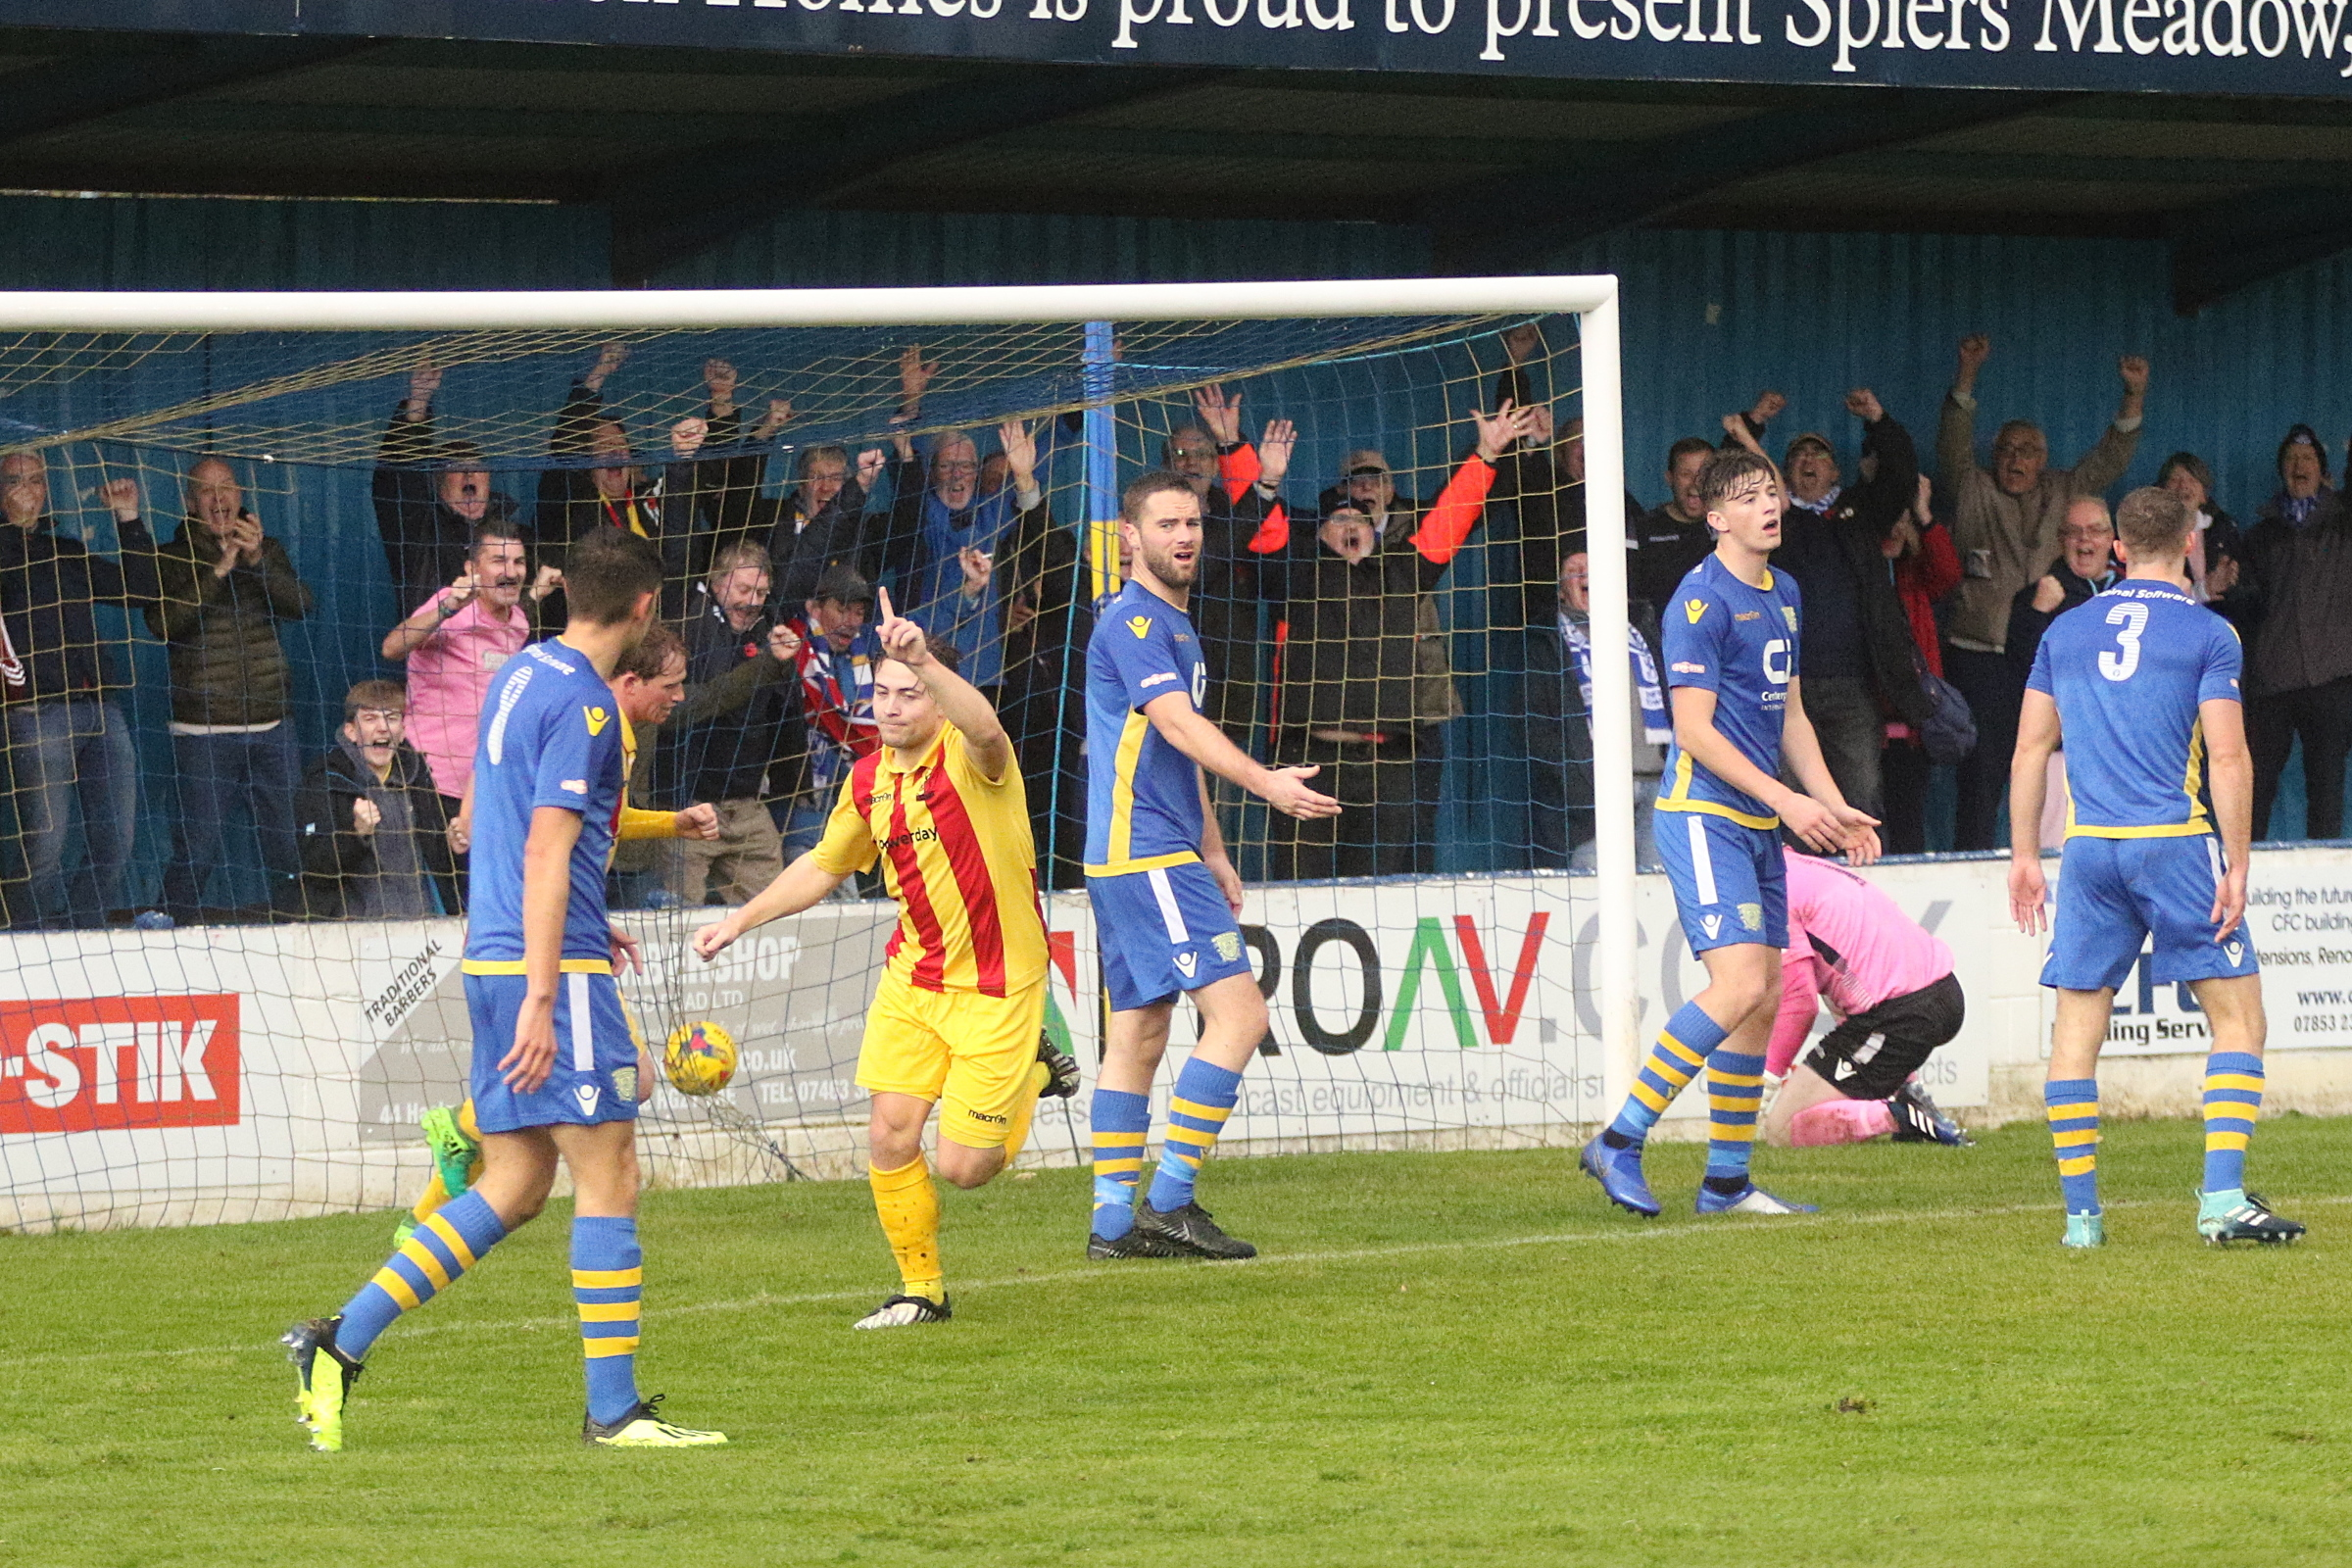 Lewis Taaffe celebrates heading Town in front, but Saturday's tie was to end in disappointment for the visitors. Picture: Phil Davison